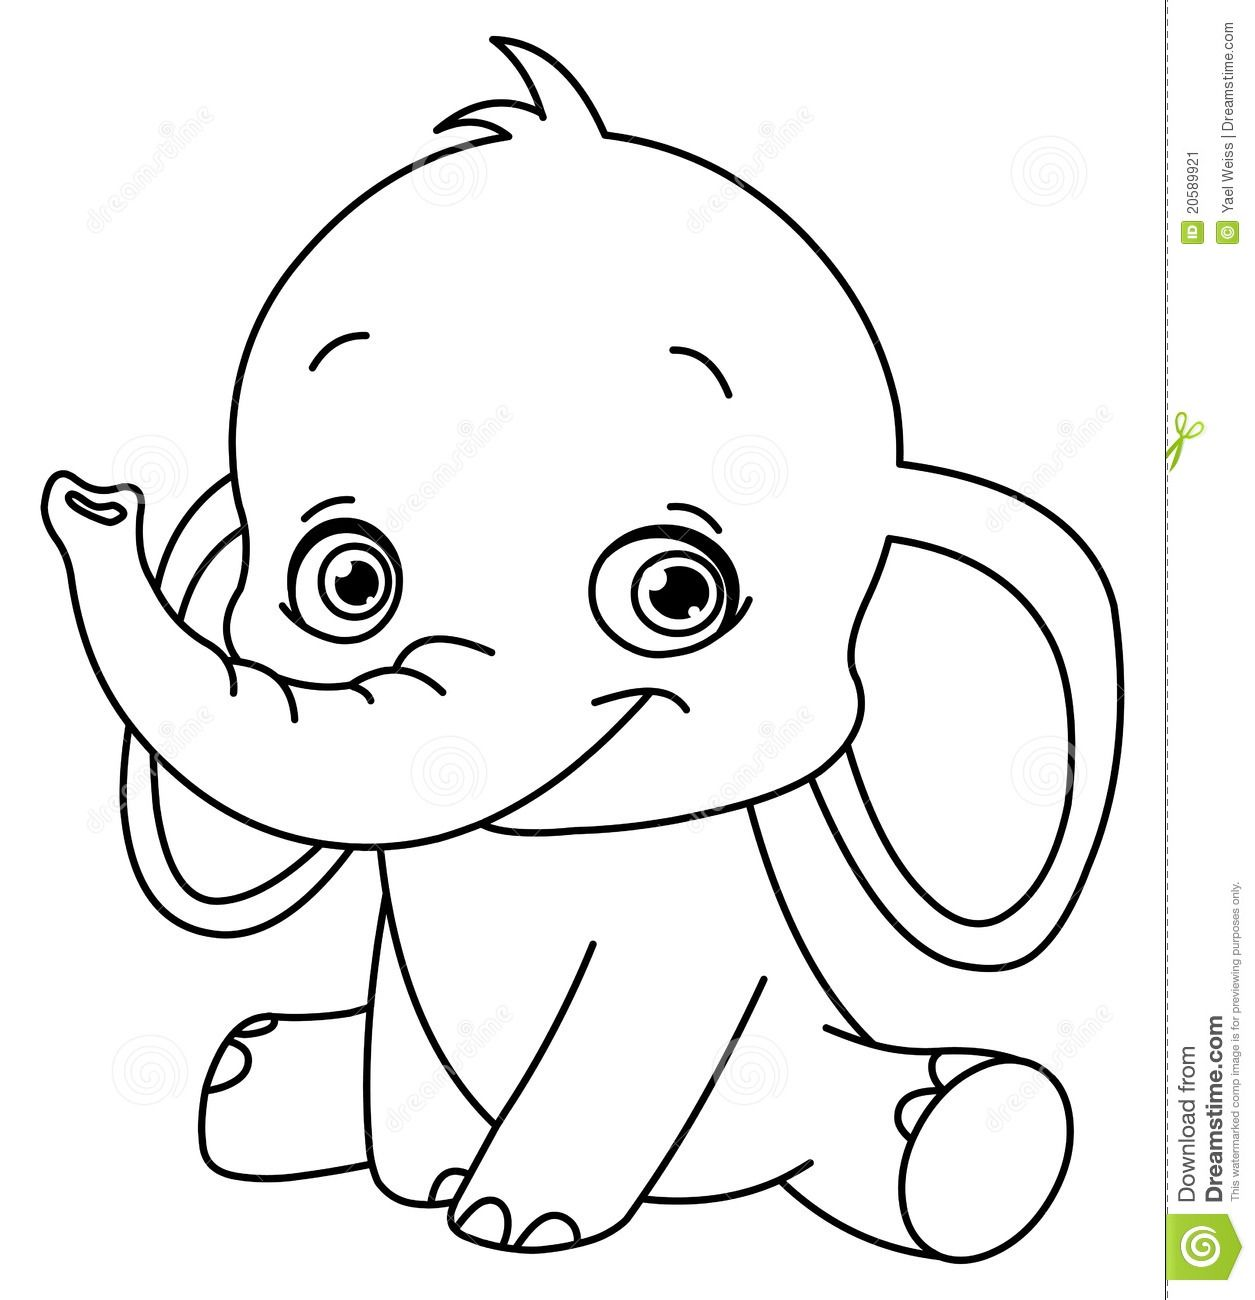 baby elephant coloring pages to download and print for free - Dumbo Elephant Coloring Pages